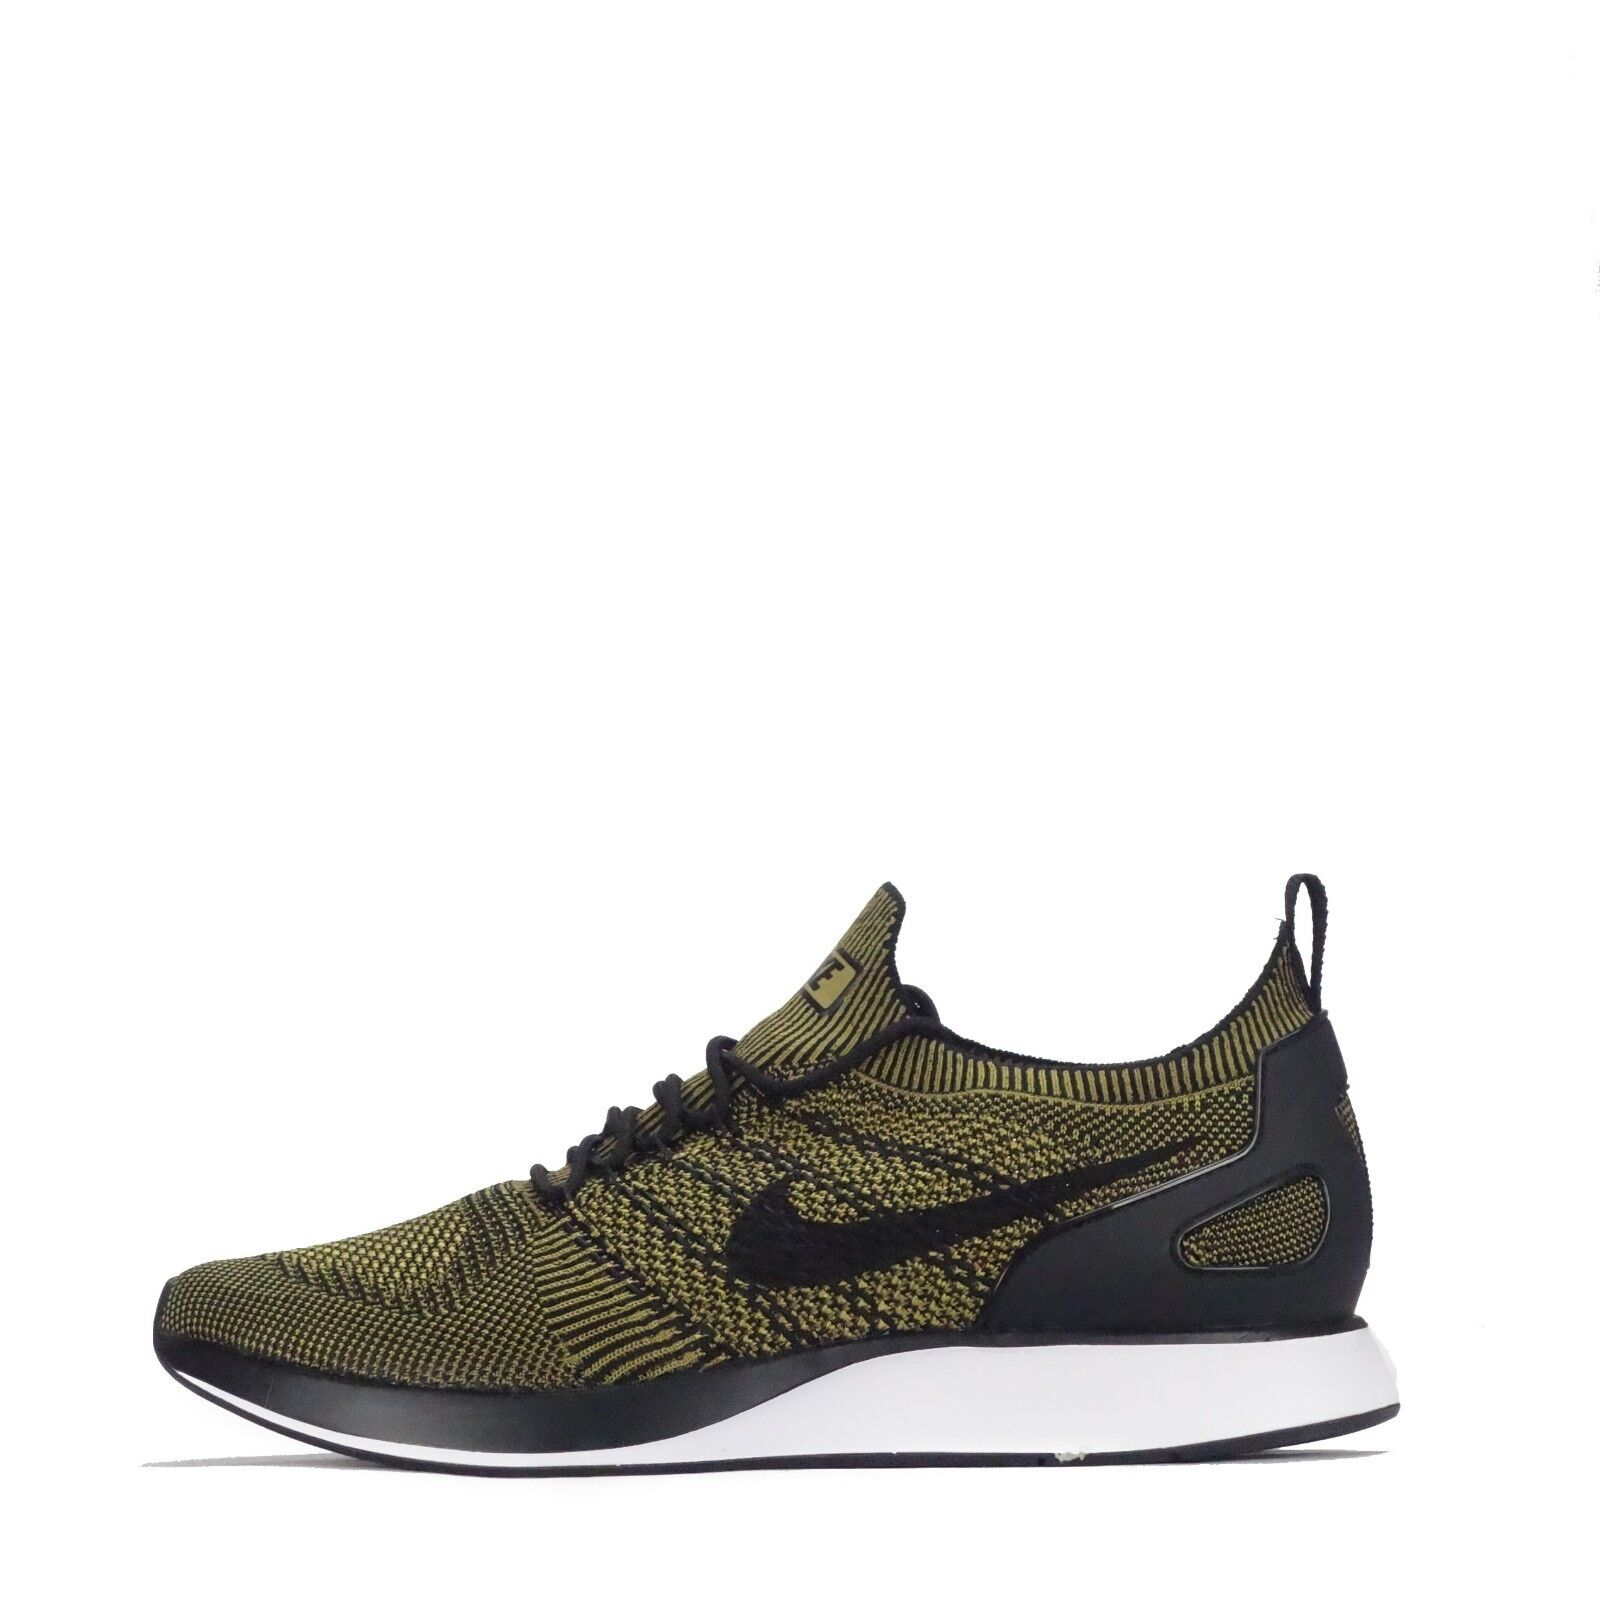 Nike Air Zoom Mariah Flyknit Racer Mens Running Trainers Black/ Desert Moss